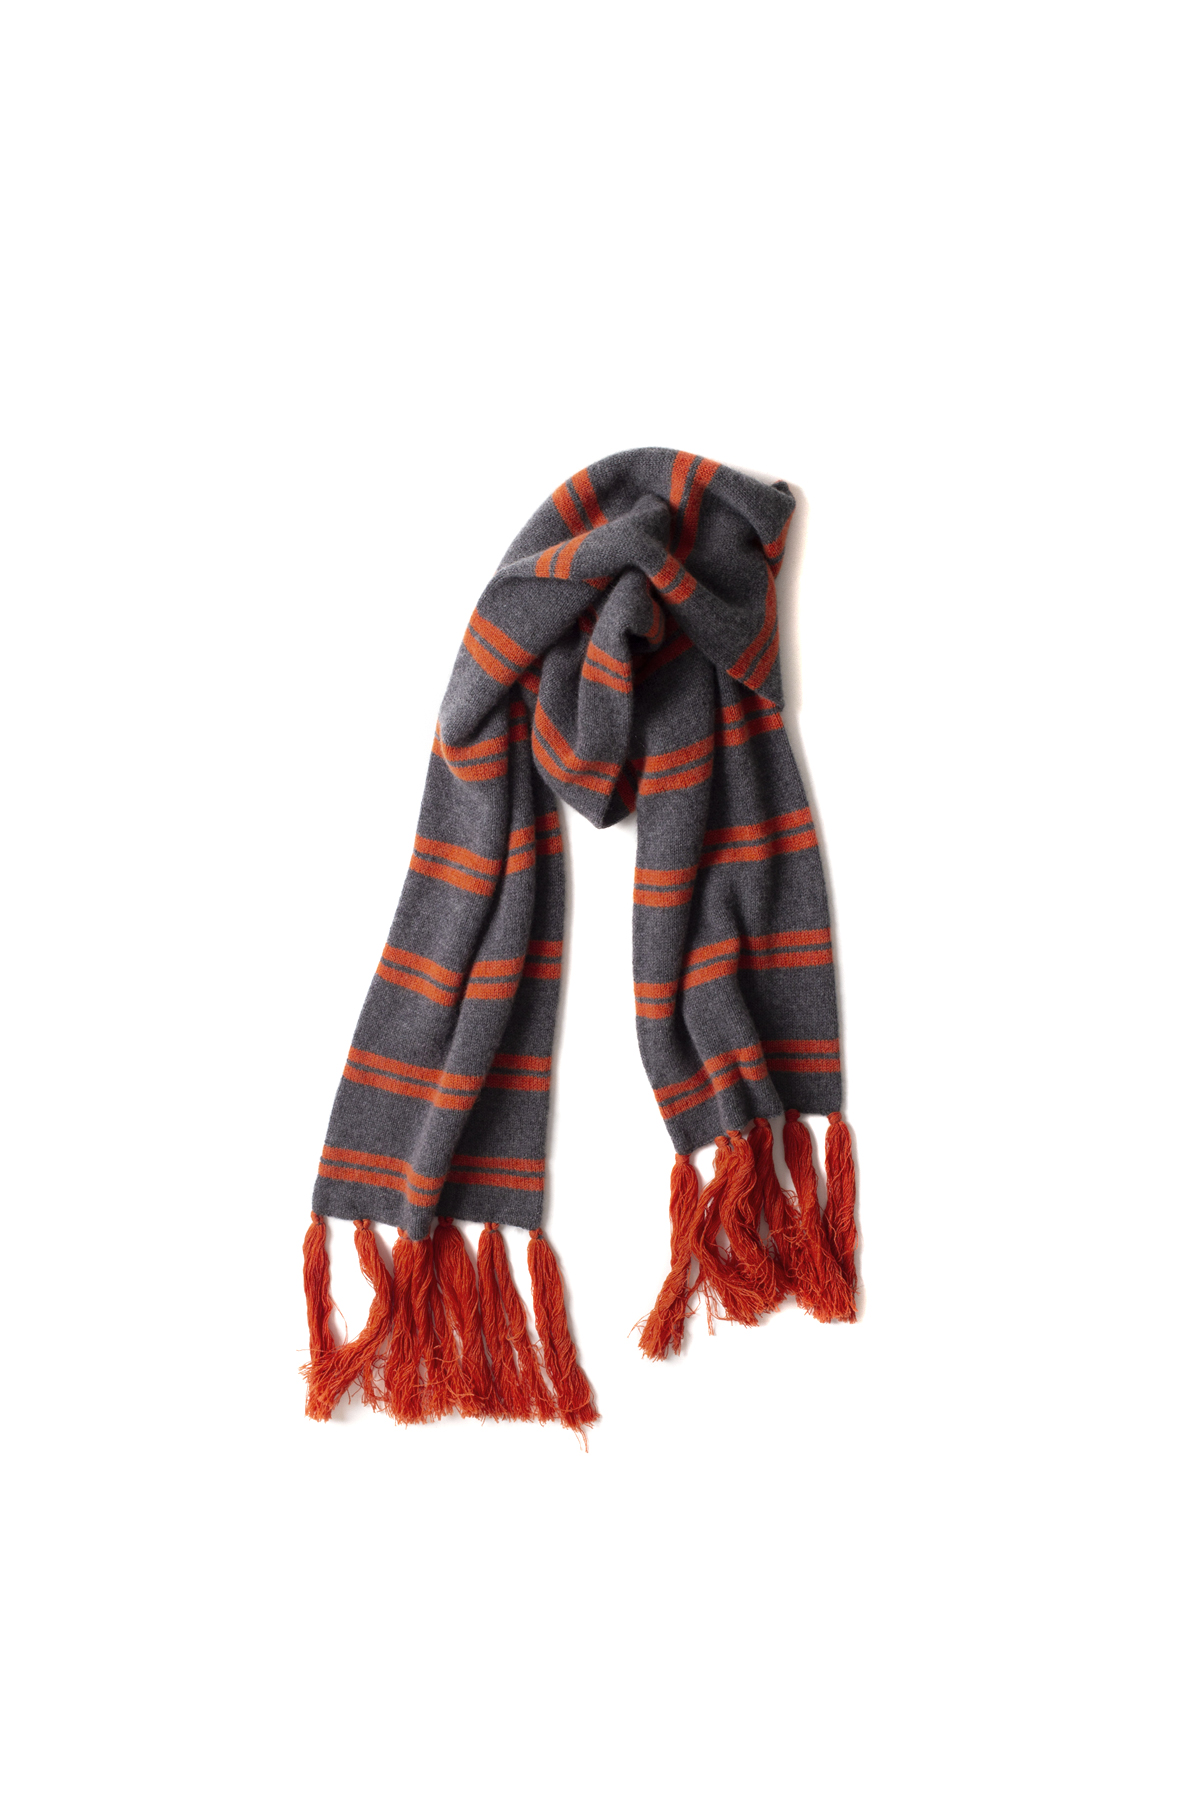 E. Tautz : Tasseled Scarf (Orange)